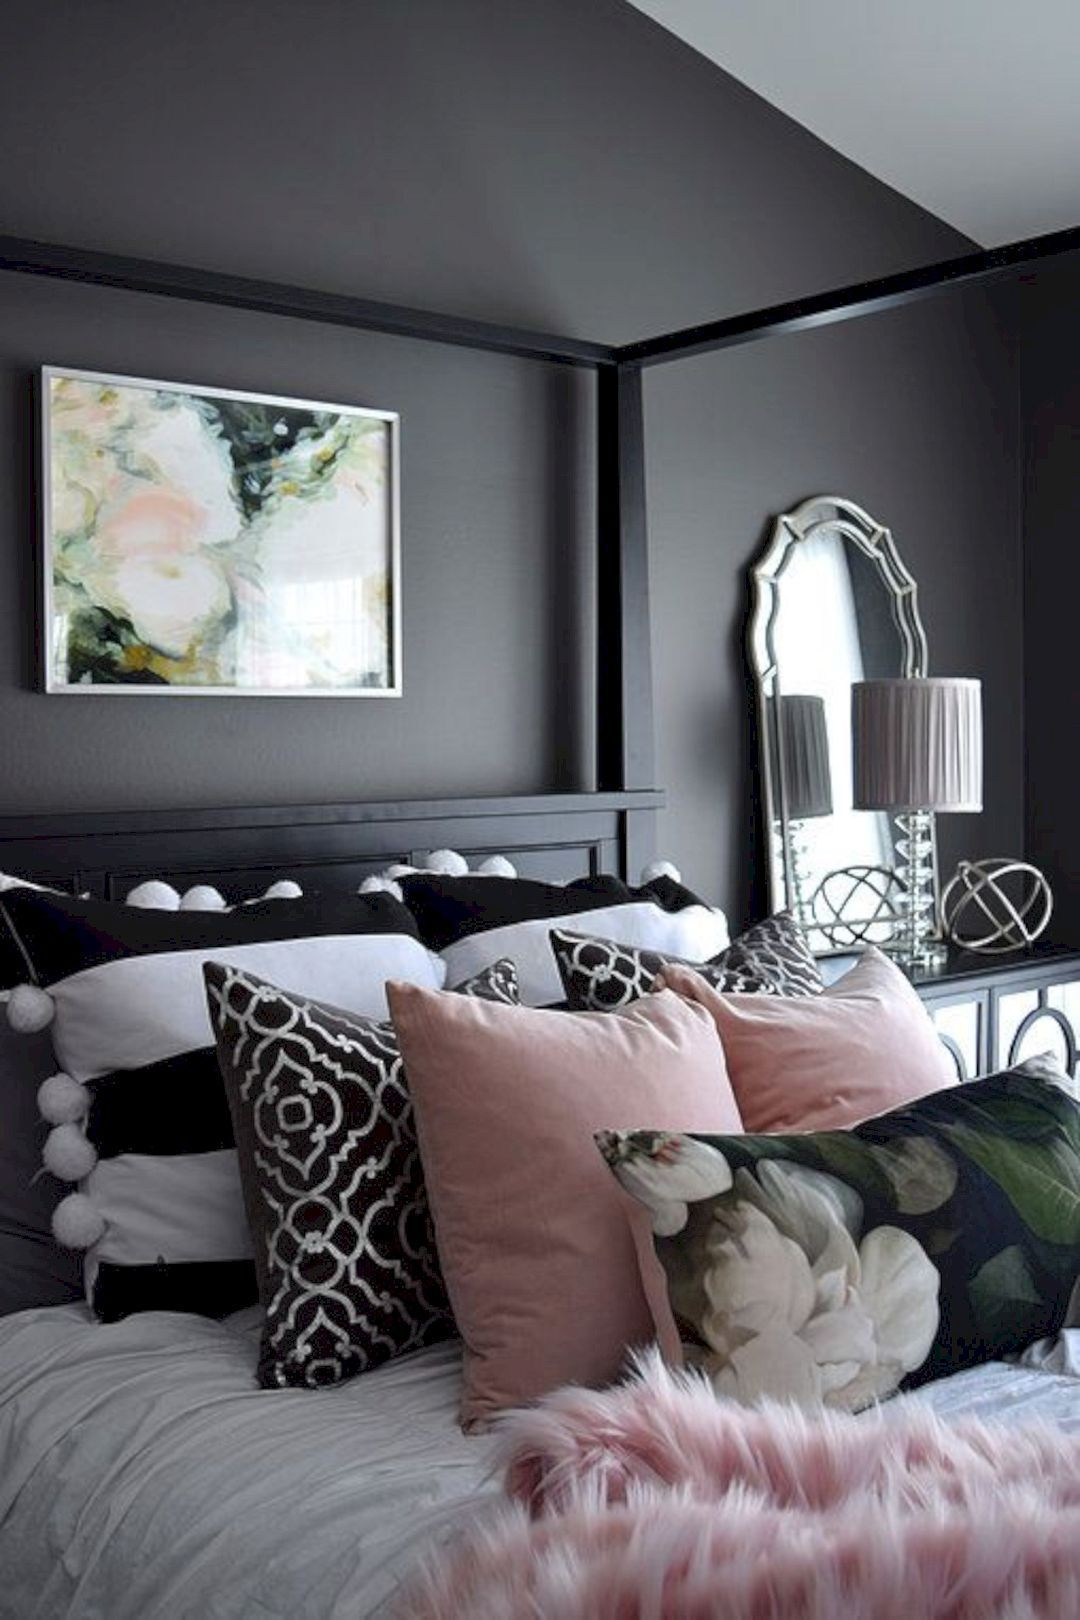 16 Awesome Black Furniture Bedroom Ideas Https Www Futuristarchitecture Com 32371 Black Furniture Bedroom Black Bedroom Furniture Bedroom Makeover Home Decor